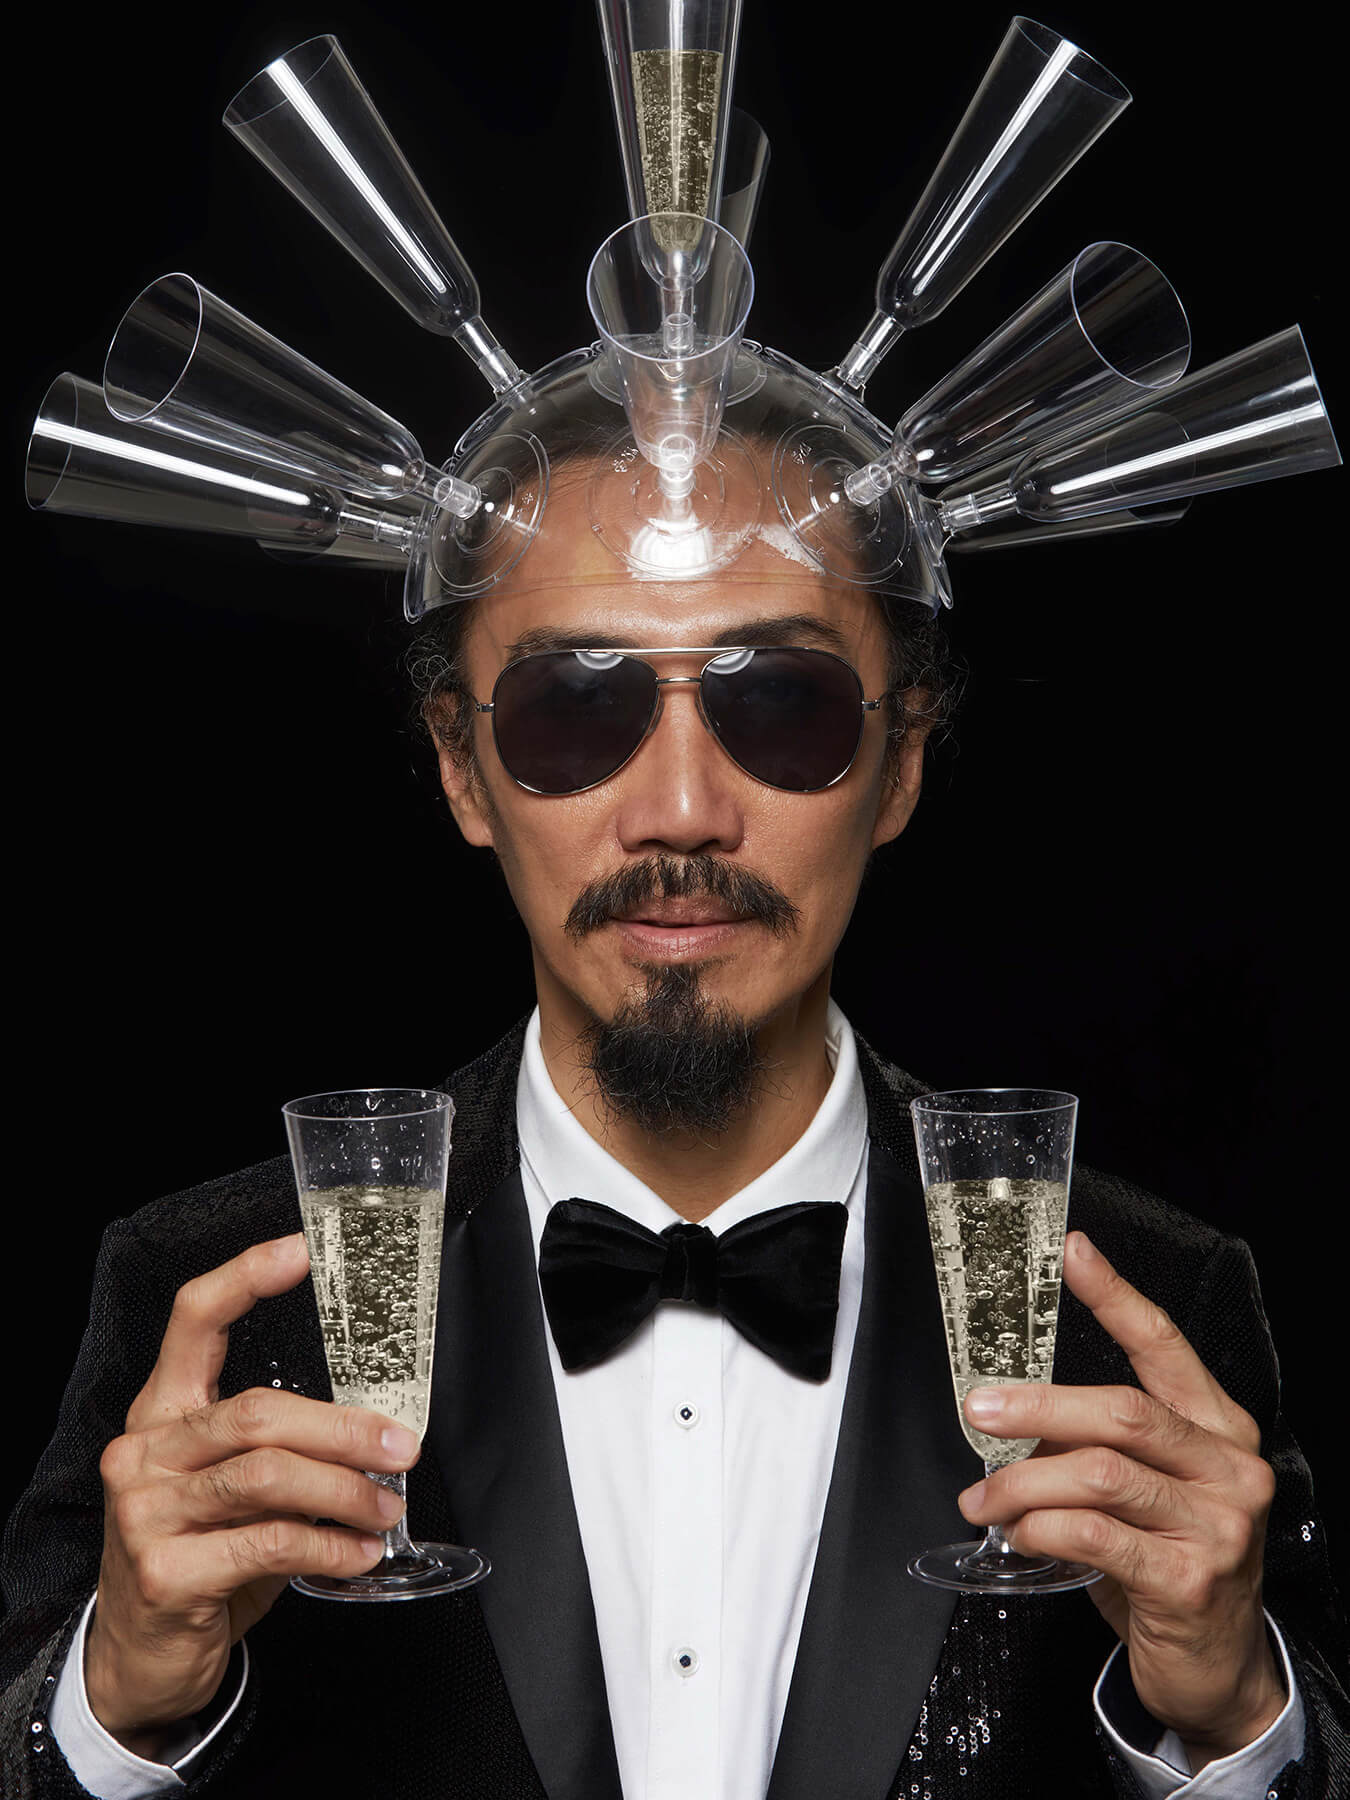 31 Dec 2017 Derong has a bunch of champagne glasses as headgear